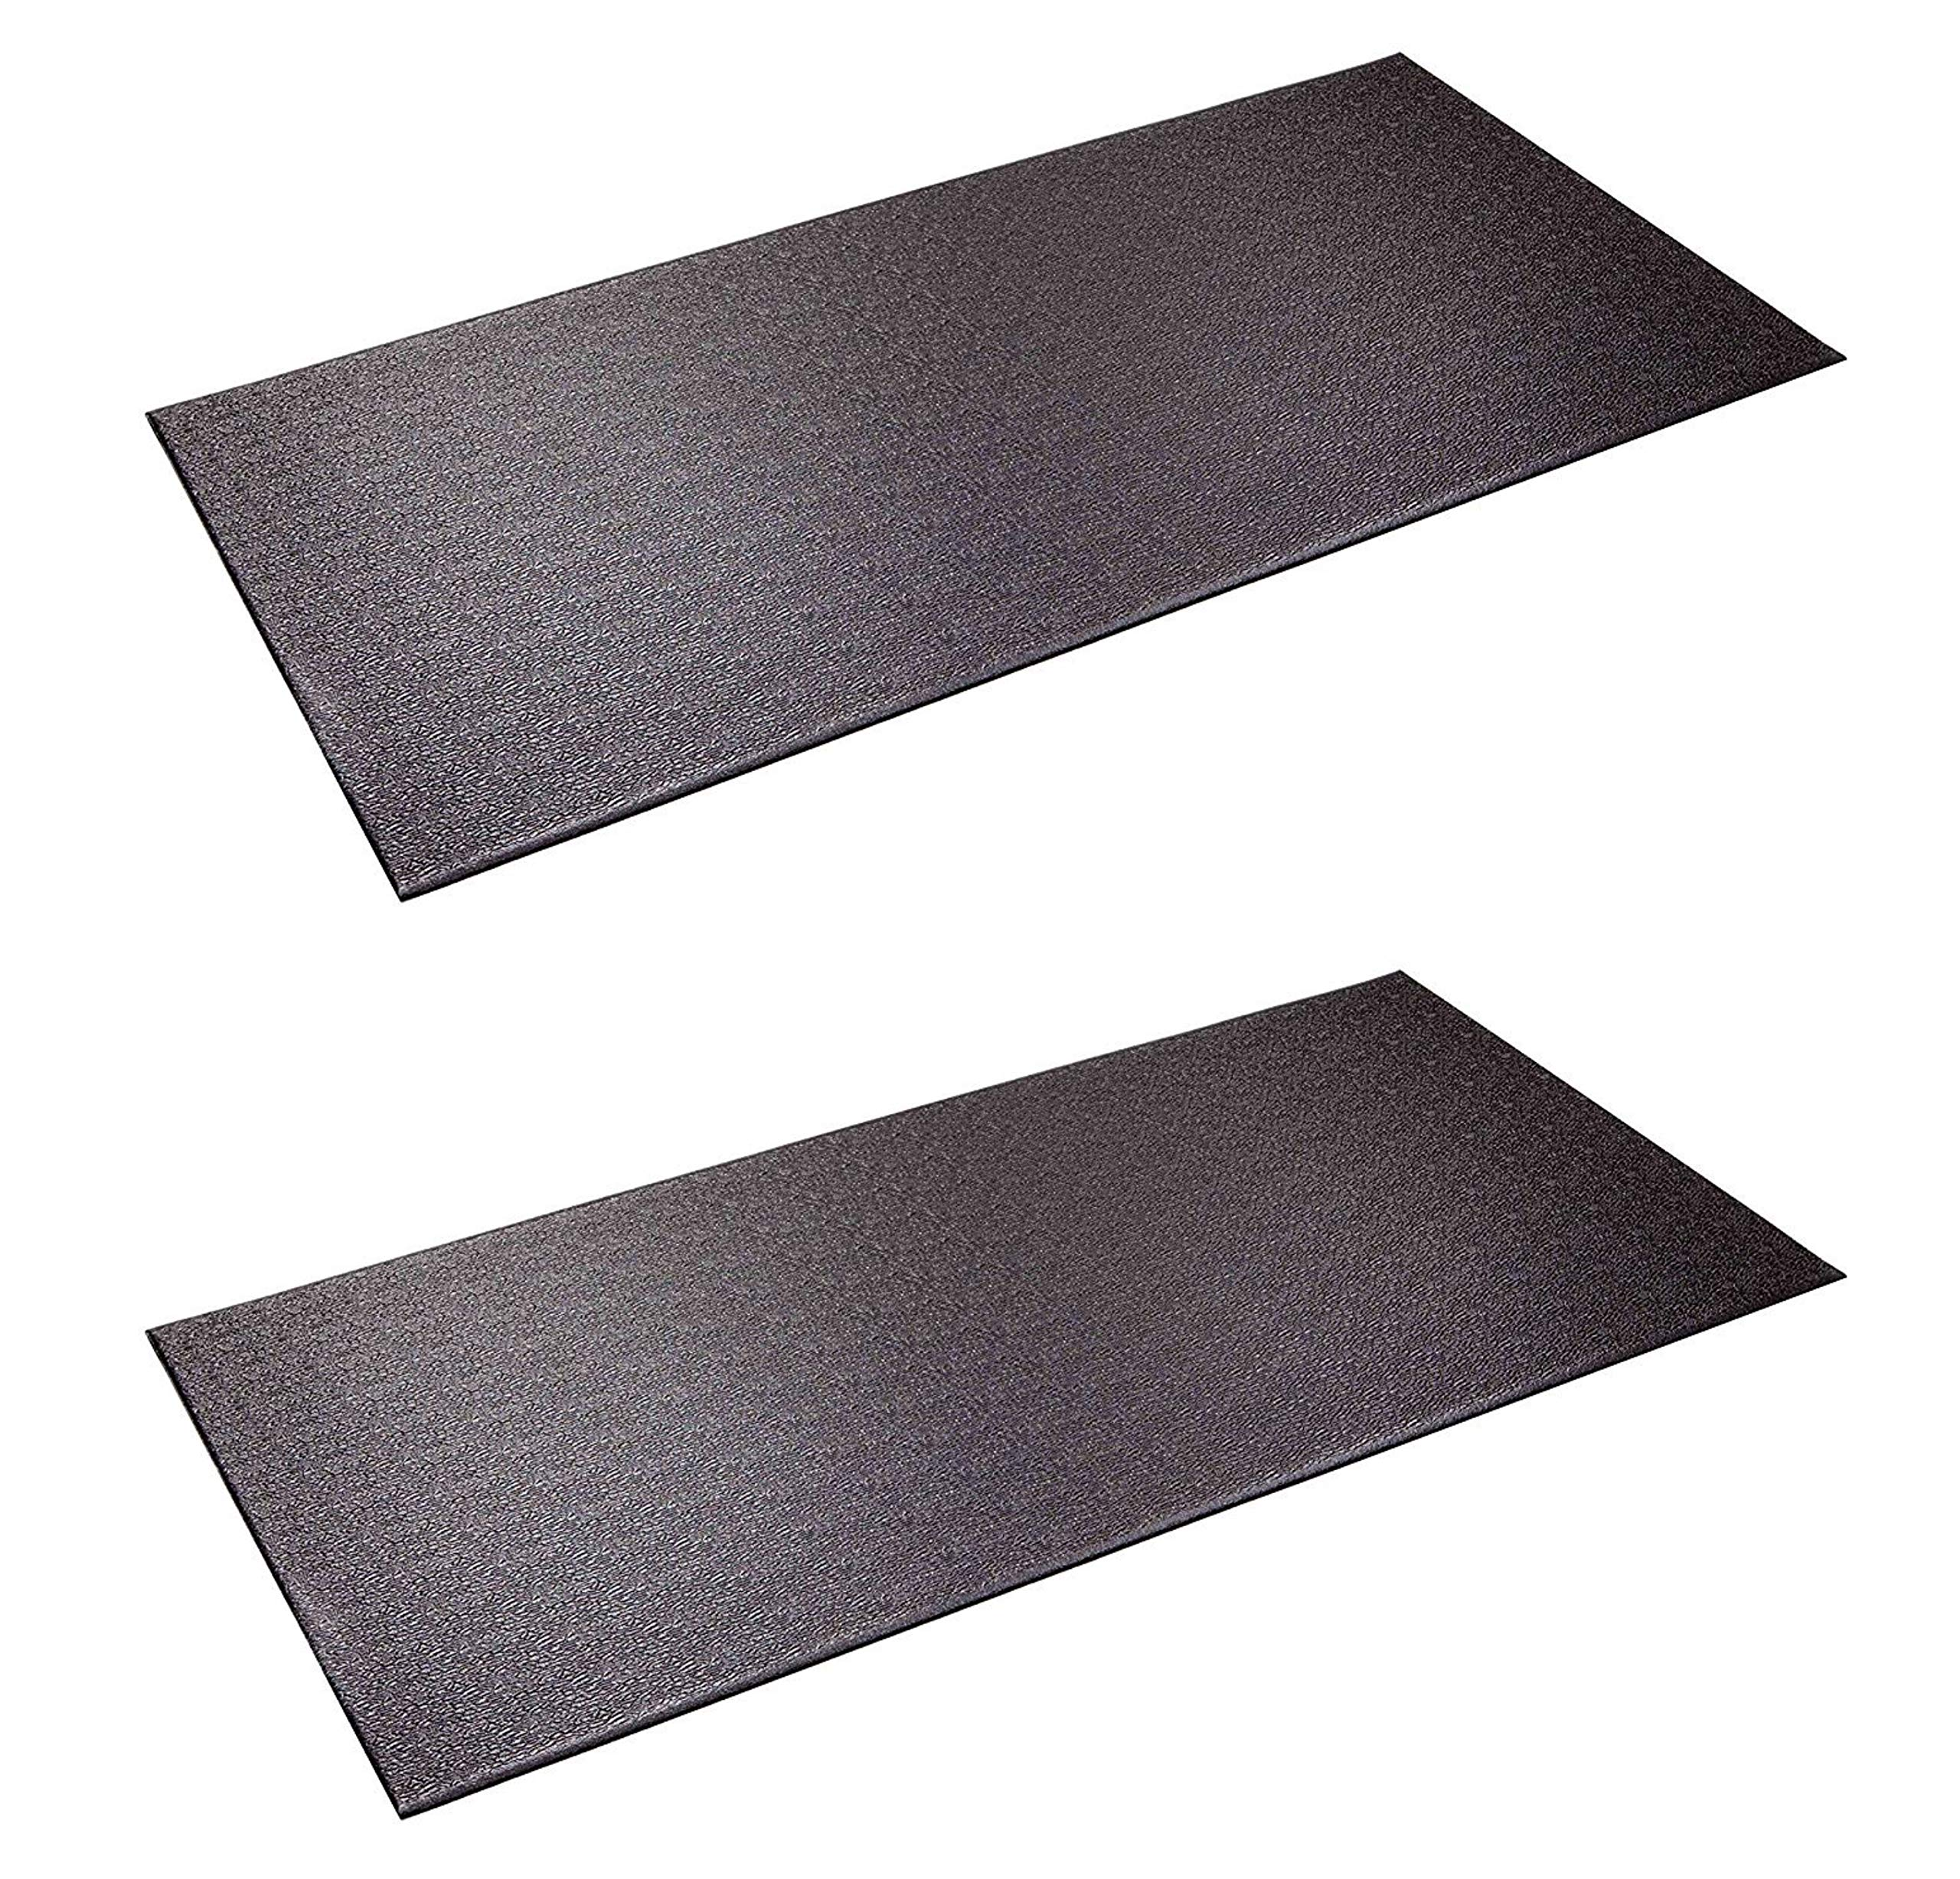 SuperMats Heavy Duty Equipment Mat 13GS Made in U.S.A. for Indoor Cycles Recumbent Bikes Upright Exercise Bikes and Steppers (2.5 Feet x 5 Feet) (30-Inch x 60-Inch) (Two Pack) by SuperMats